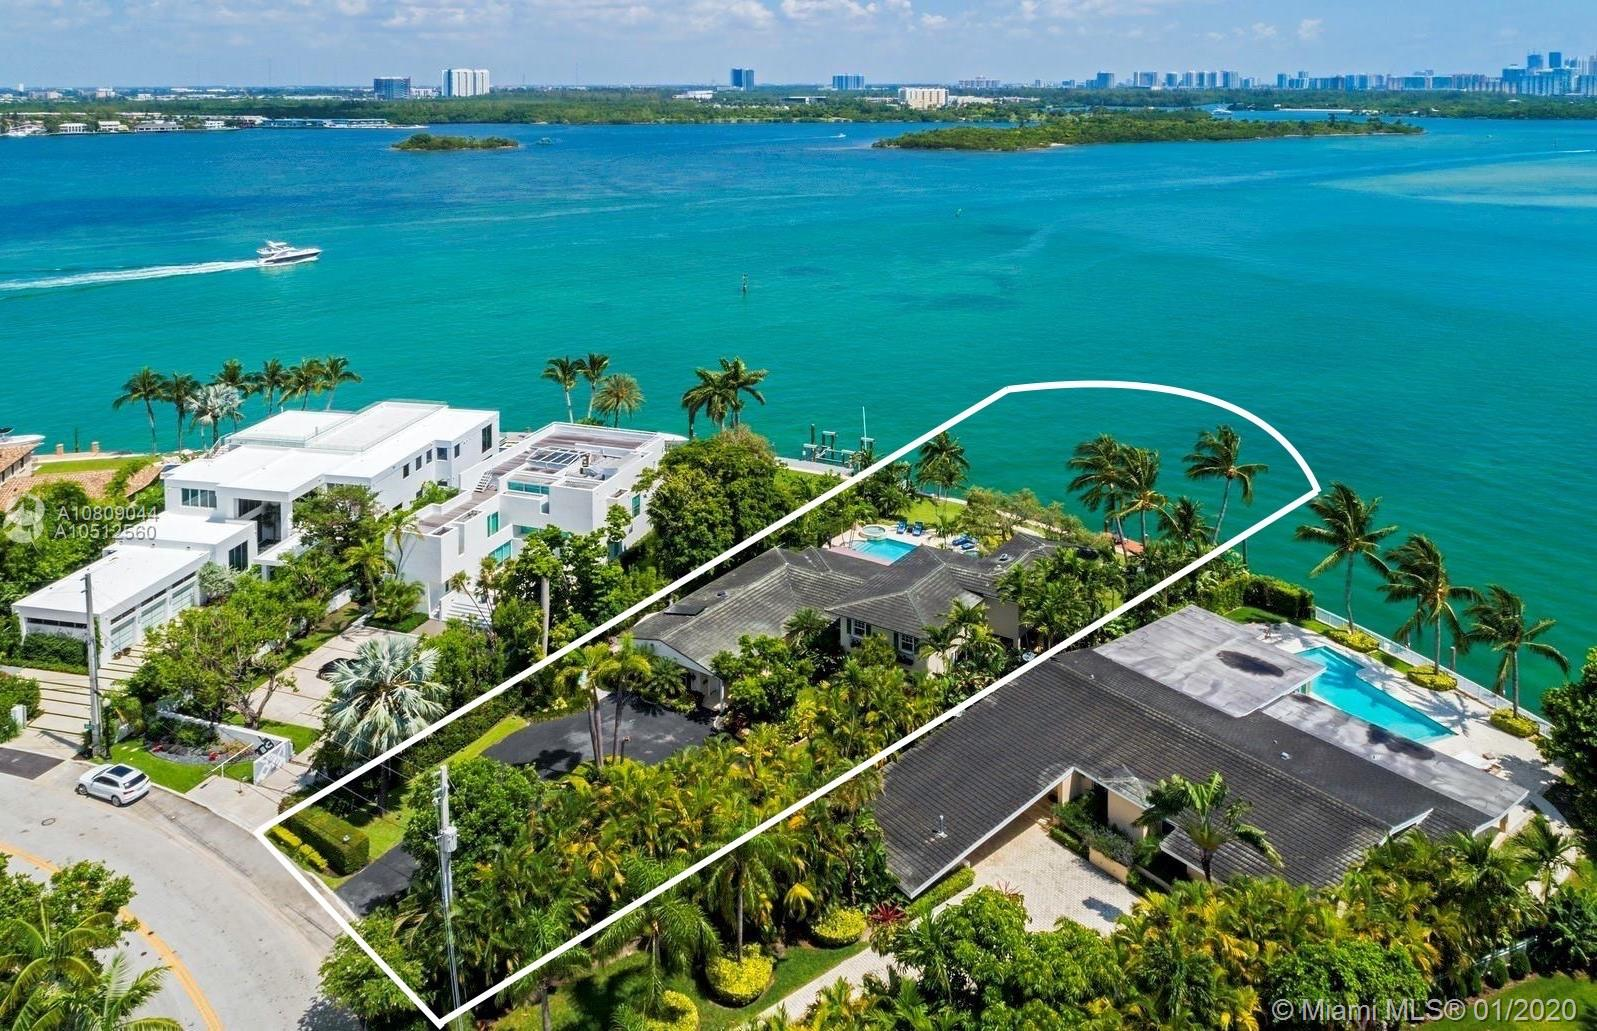 This lot is the best and biggest lot on the market in Bay Harbor! The extraordinary estate sits on a 20,691 square-foot pie-shaped lot. It has the most expansive open bay views in Bay Harbor. It boasts it's 120 linear feet of breathtaking waterfrontage that overlooks Biscayne Bay and the Sunny Isles skyline. Enjoy exclusive views with this home's floor to ceiling windows which offer beautiful natural light all day because of its northern exposure. Renovate this home to perfection or build your dream home in Bay Harbor, walking distance to shops and beaches.